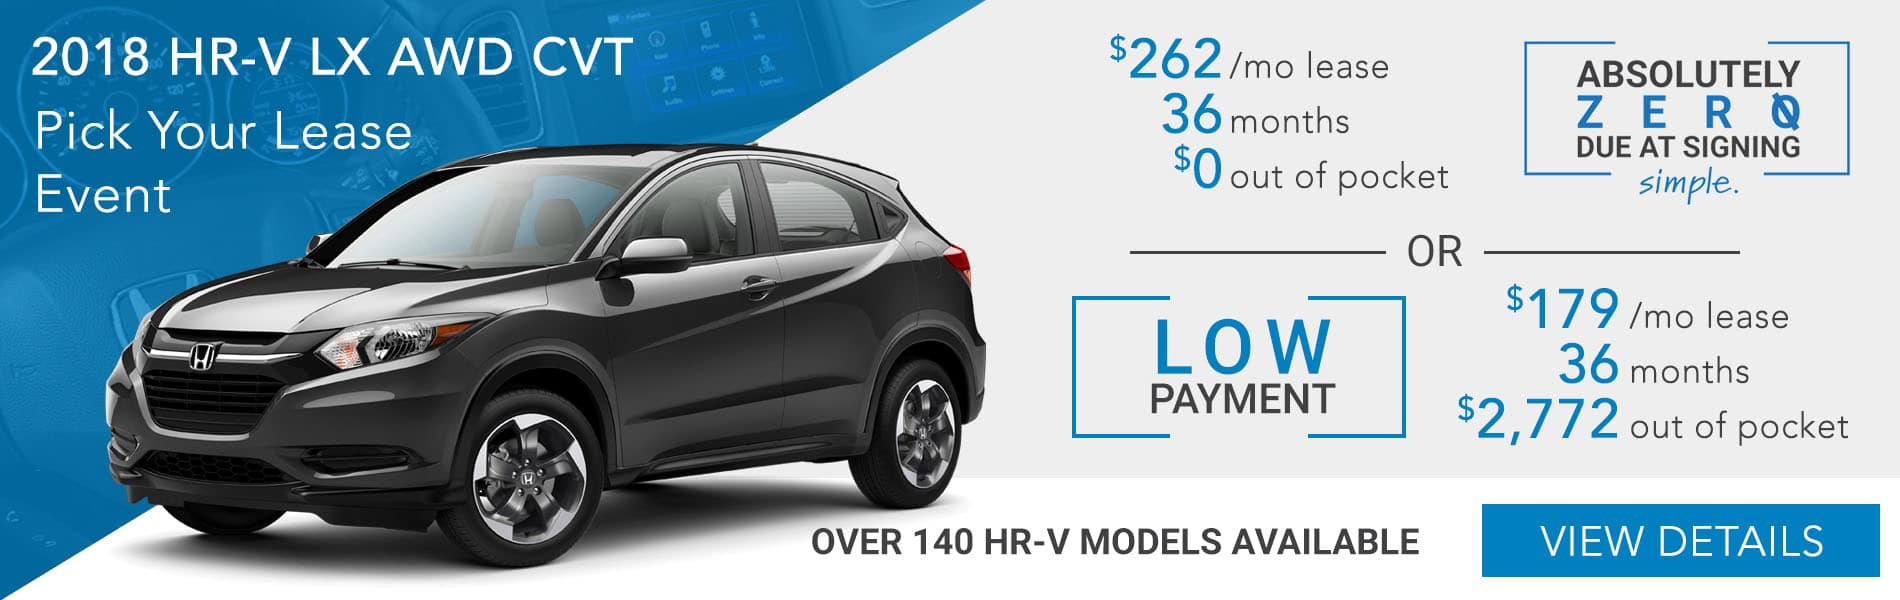 Pick your lease event. 2018 HR-V LX AWD CVT choose absolutely zero out of pocket lease at $262 per month or choose the low payment option at $179 per month with $2,772 out of pocket.